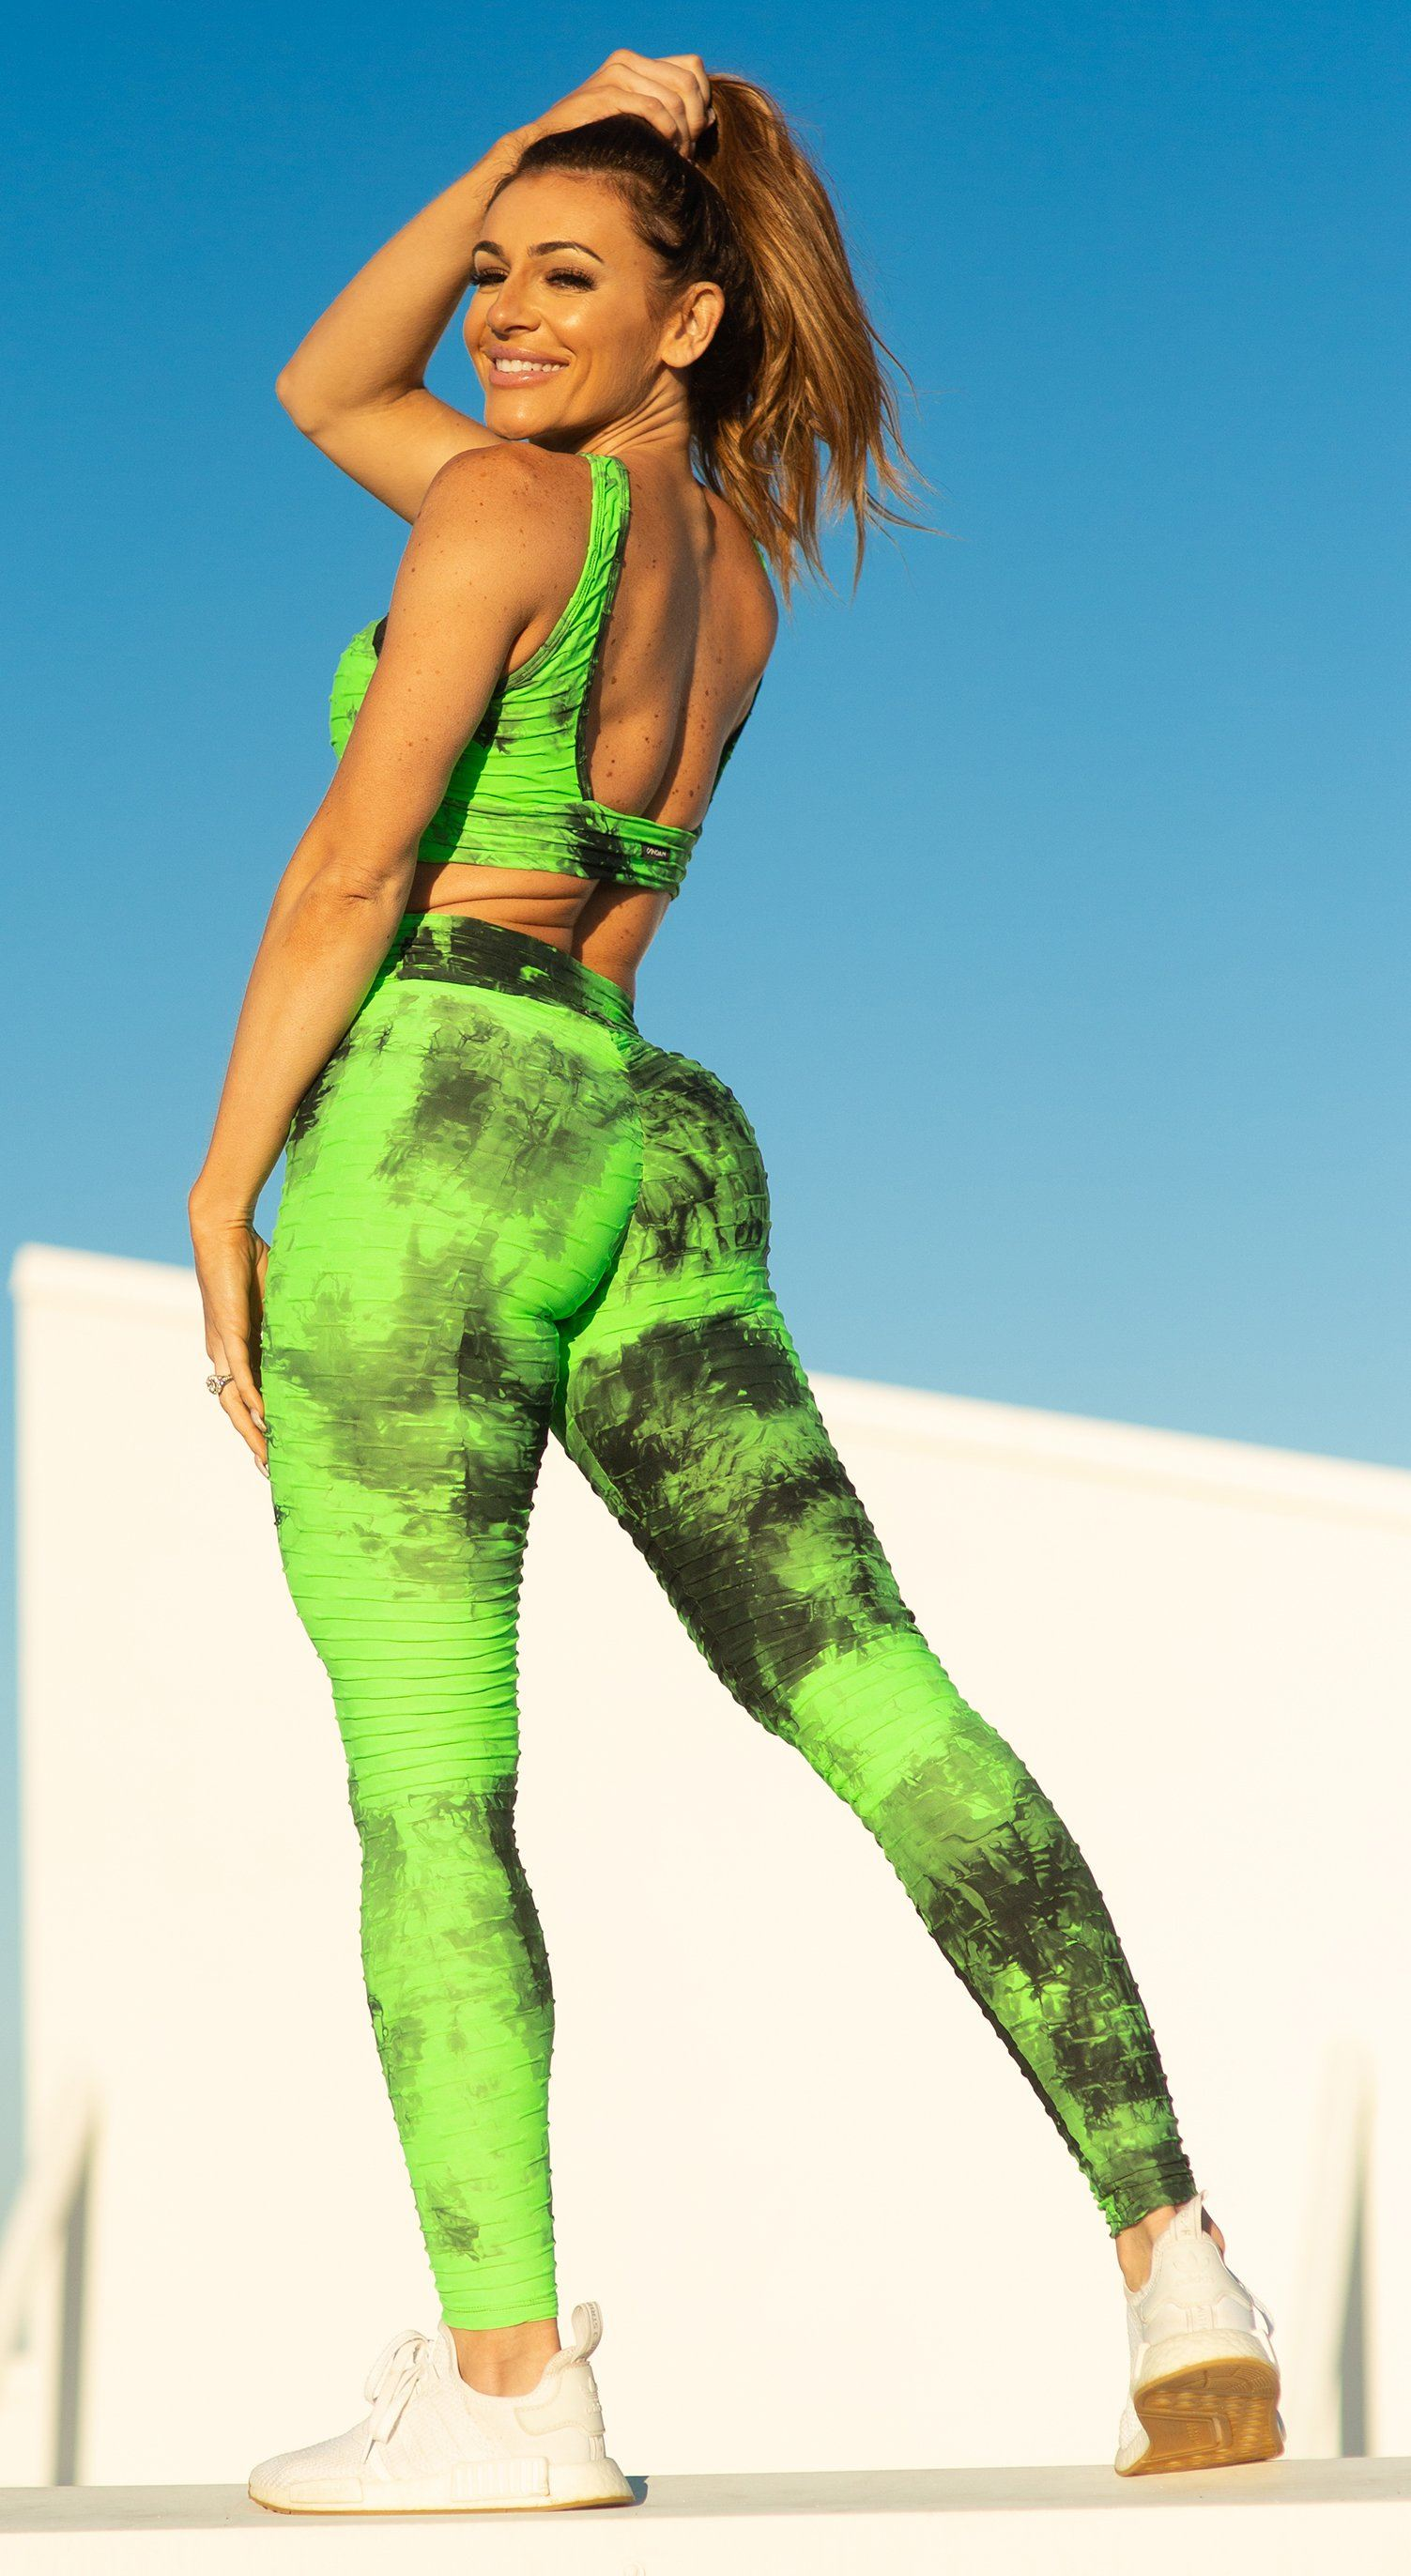 Brazilian Legging - High Waist Anti Cellulite Textured Scrunch Booty Tie Dye Green & Black